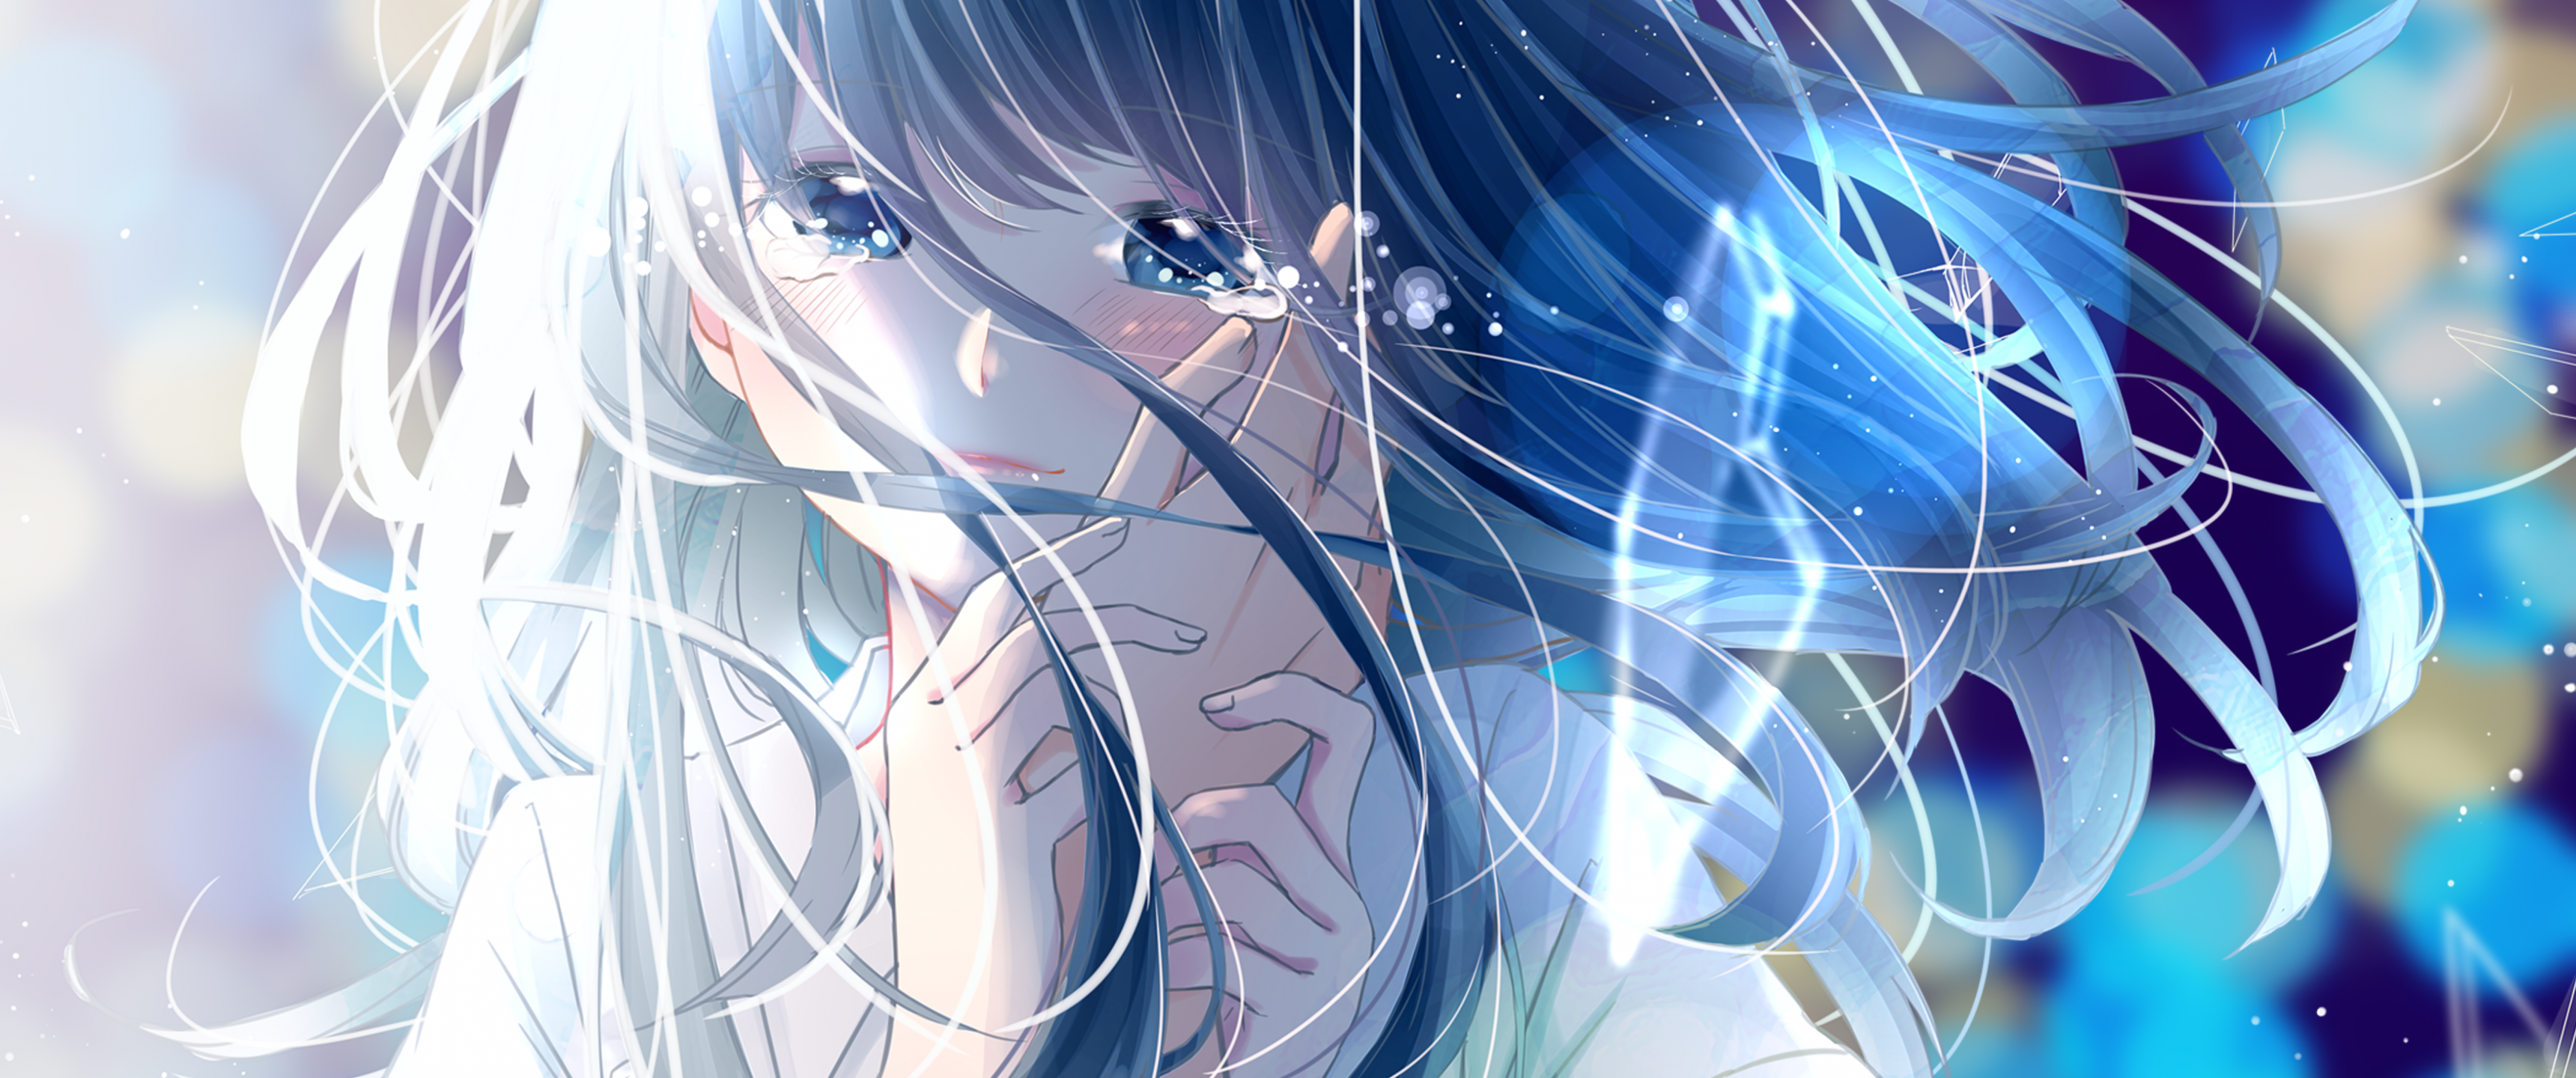 3440x1440 Anime Wallpapers Top Free 3440x1440 Anime Backgrounds